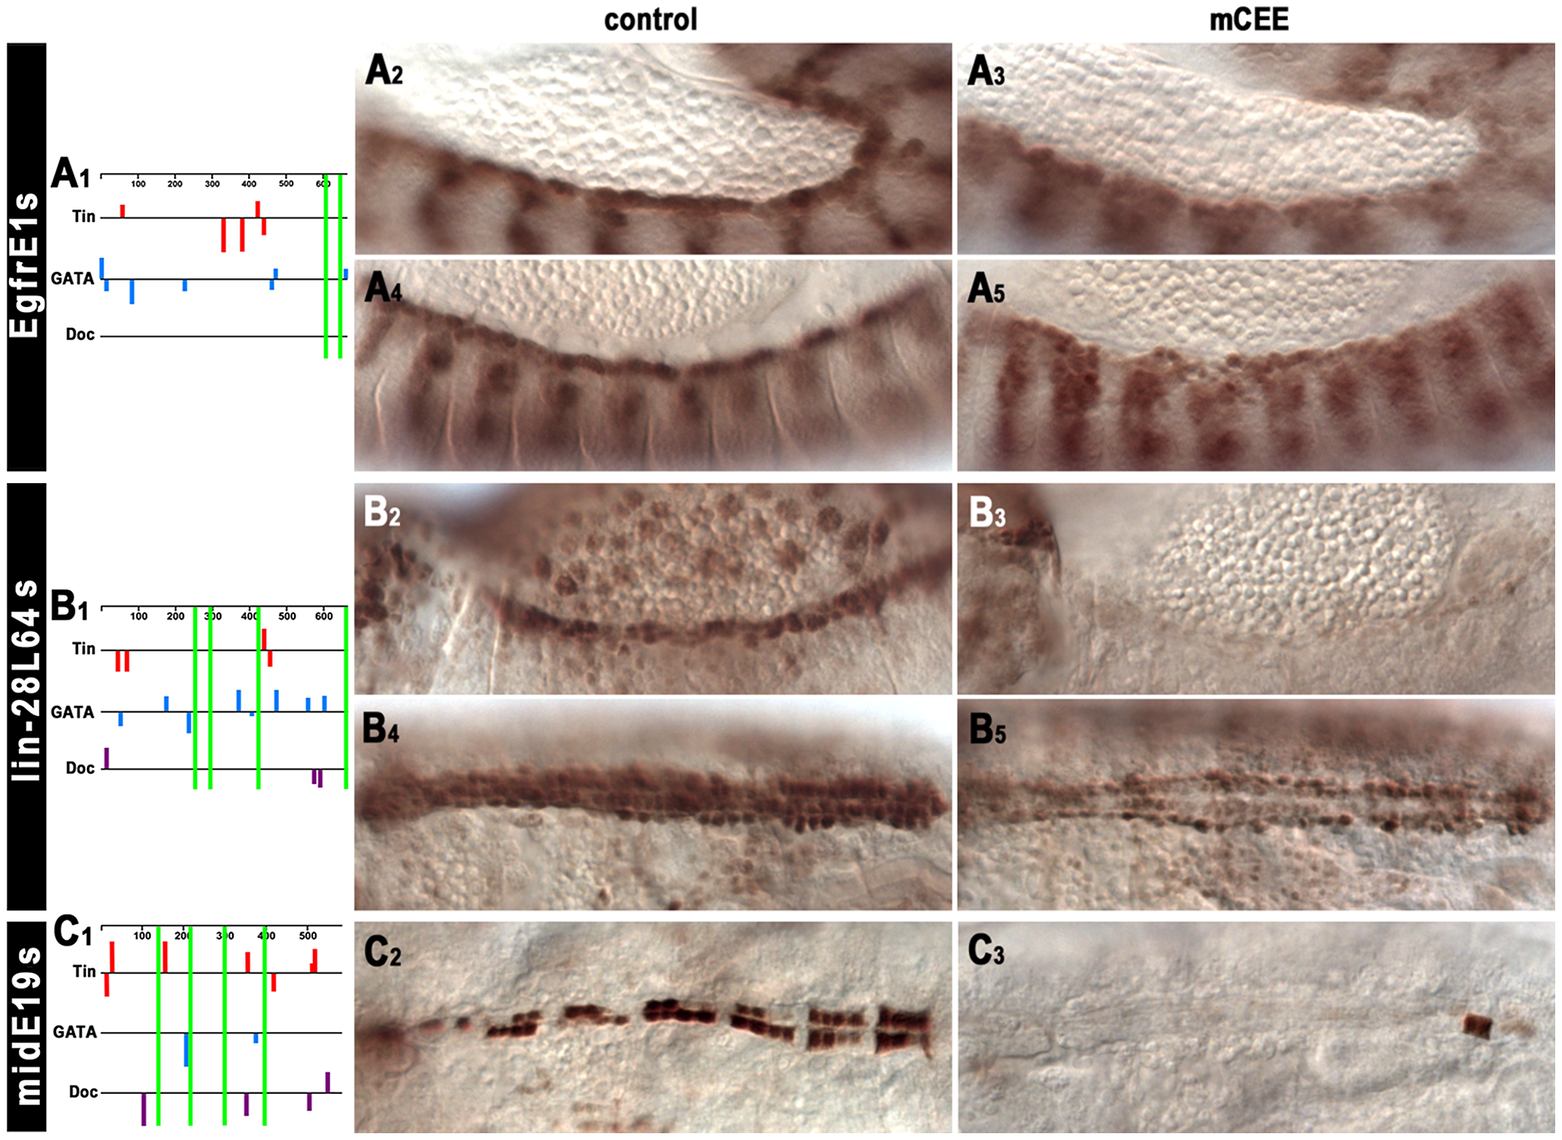 <i>In vivo</i> assays of the function of the CEE motifs in selected cardiac enhancers.